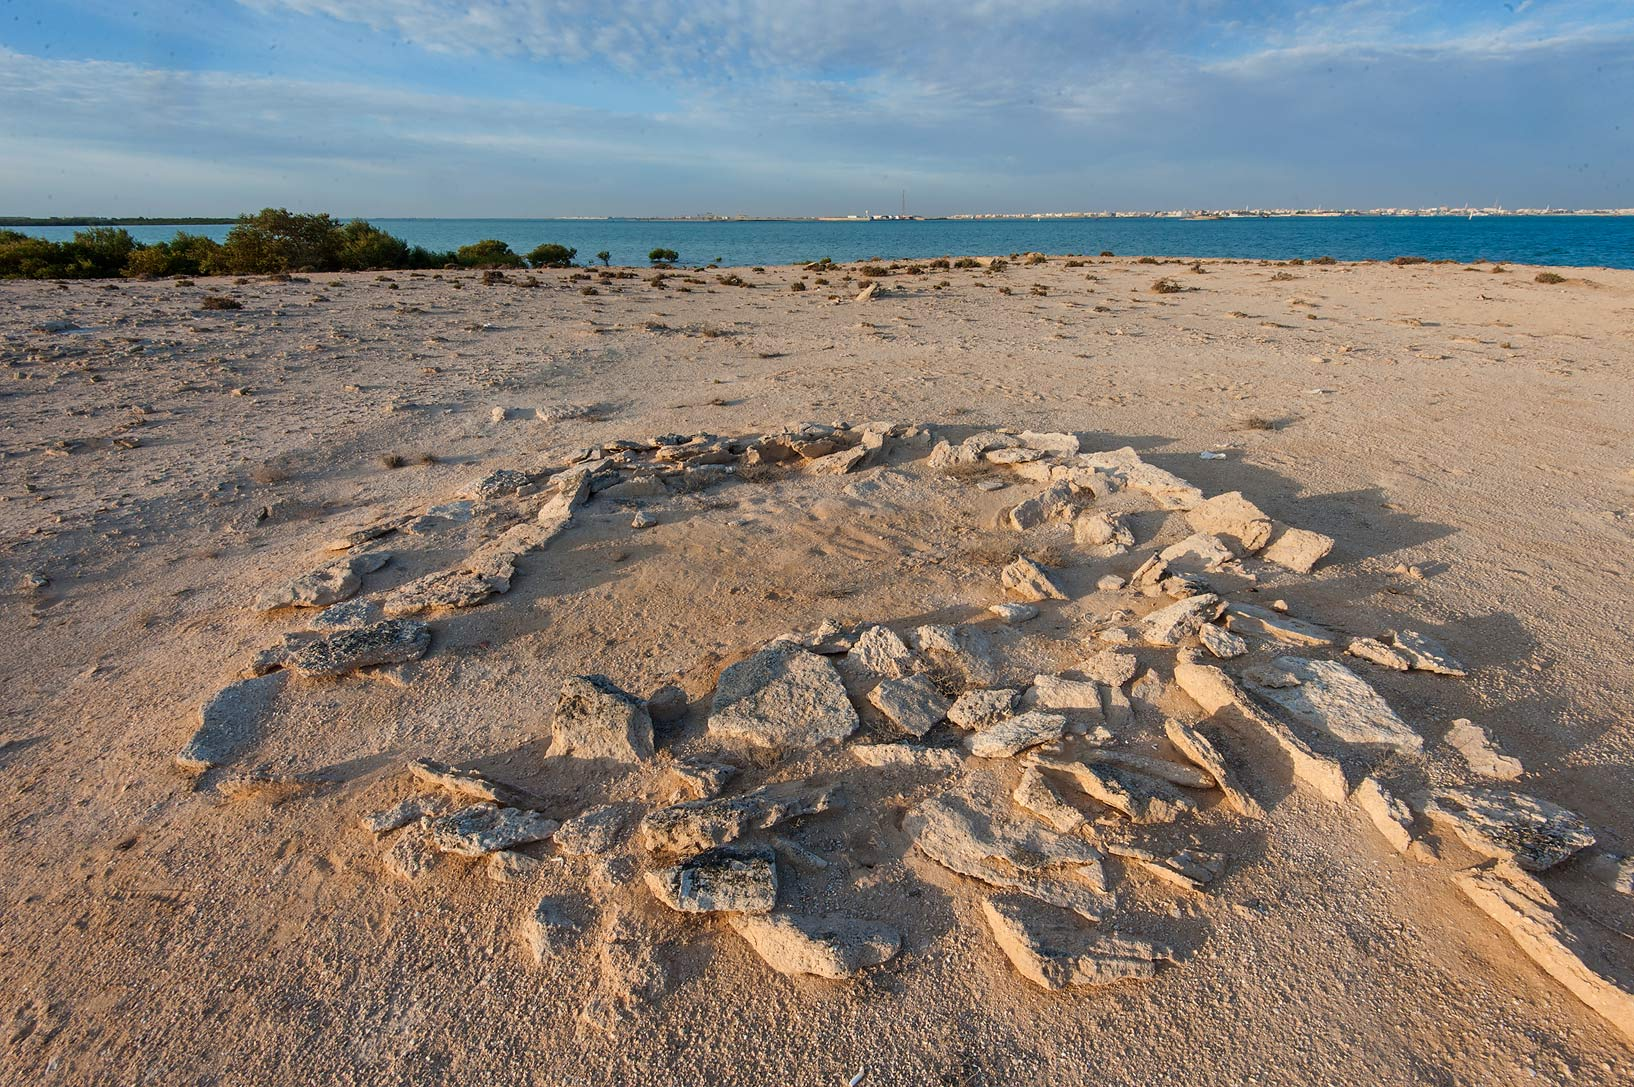 Ancient stone ruins in Purple Island (Jazirat Bin Ghanim). Al Khor, Qatar